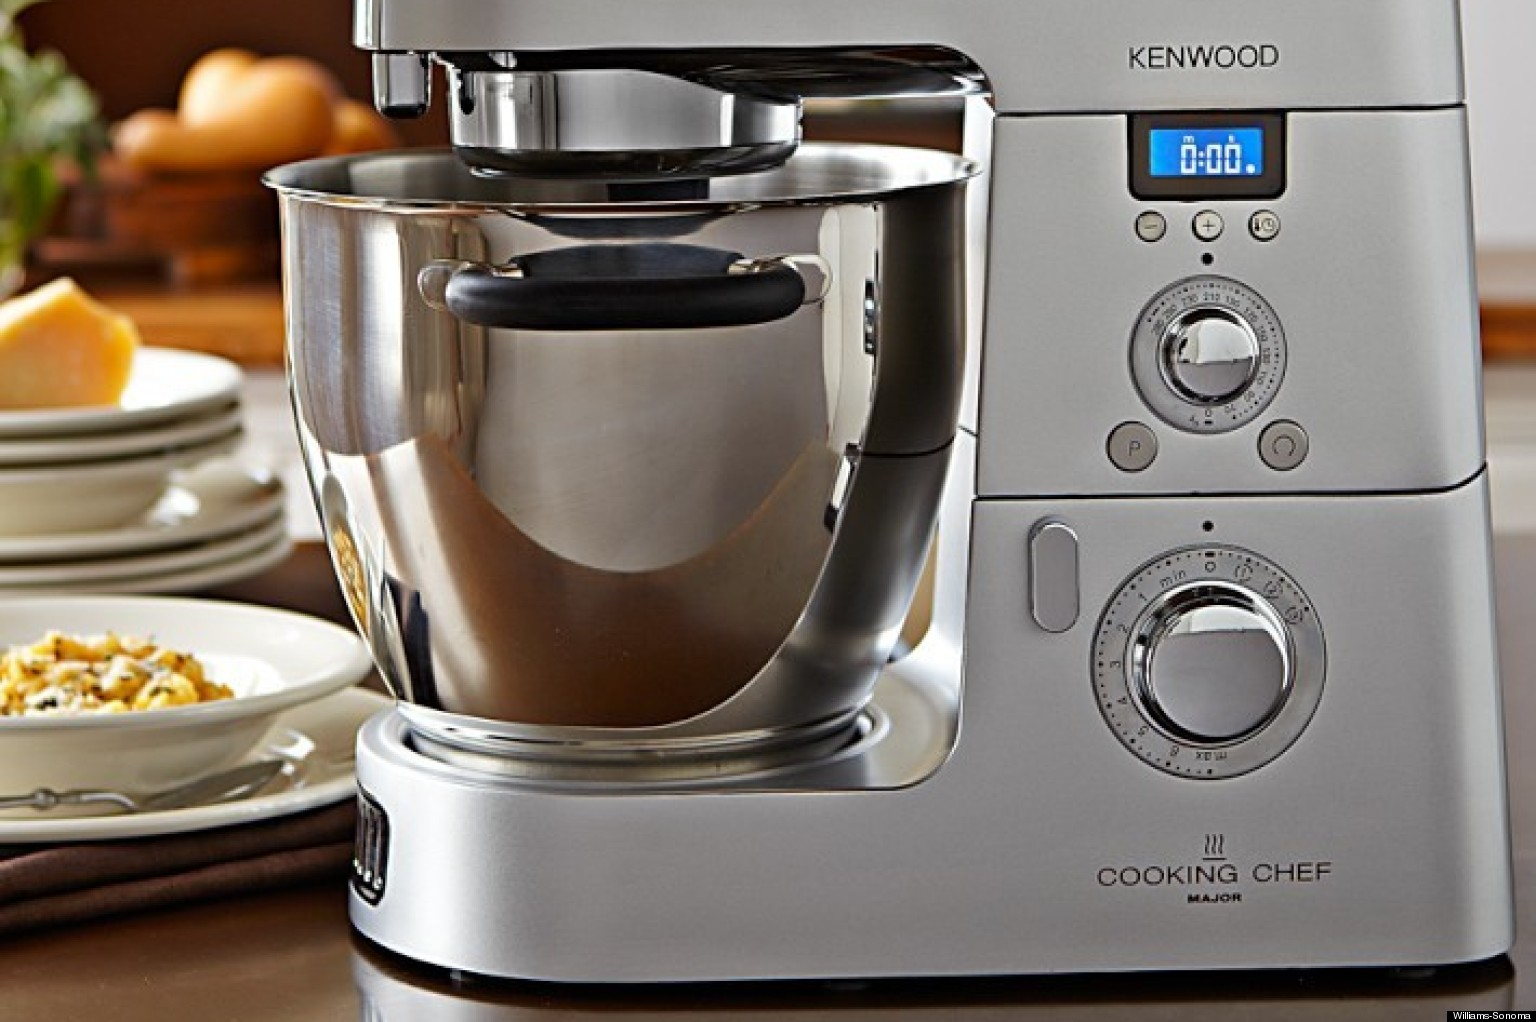 the kenwood cooking chef is a mixer blender food